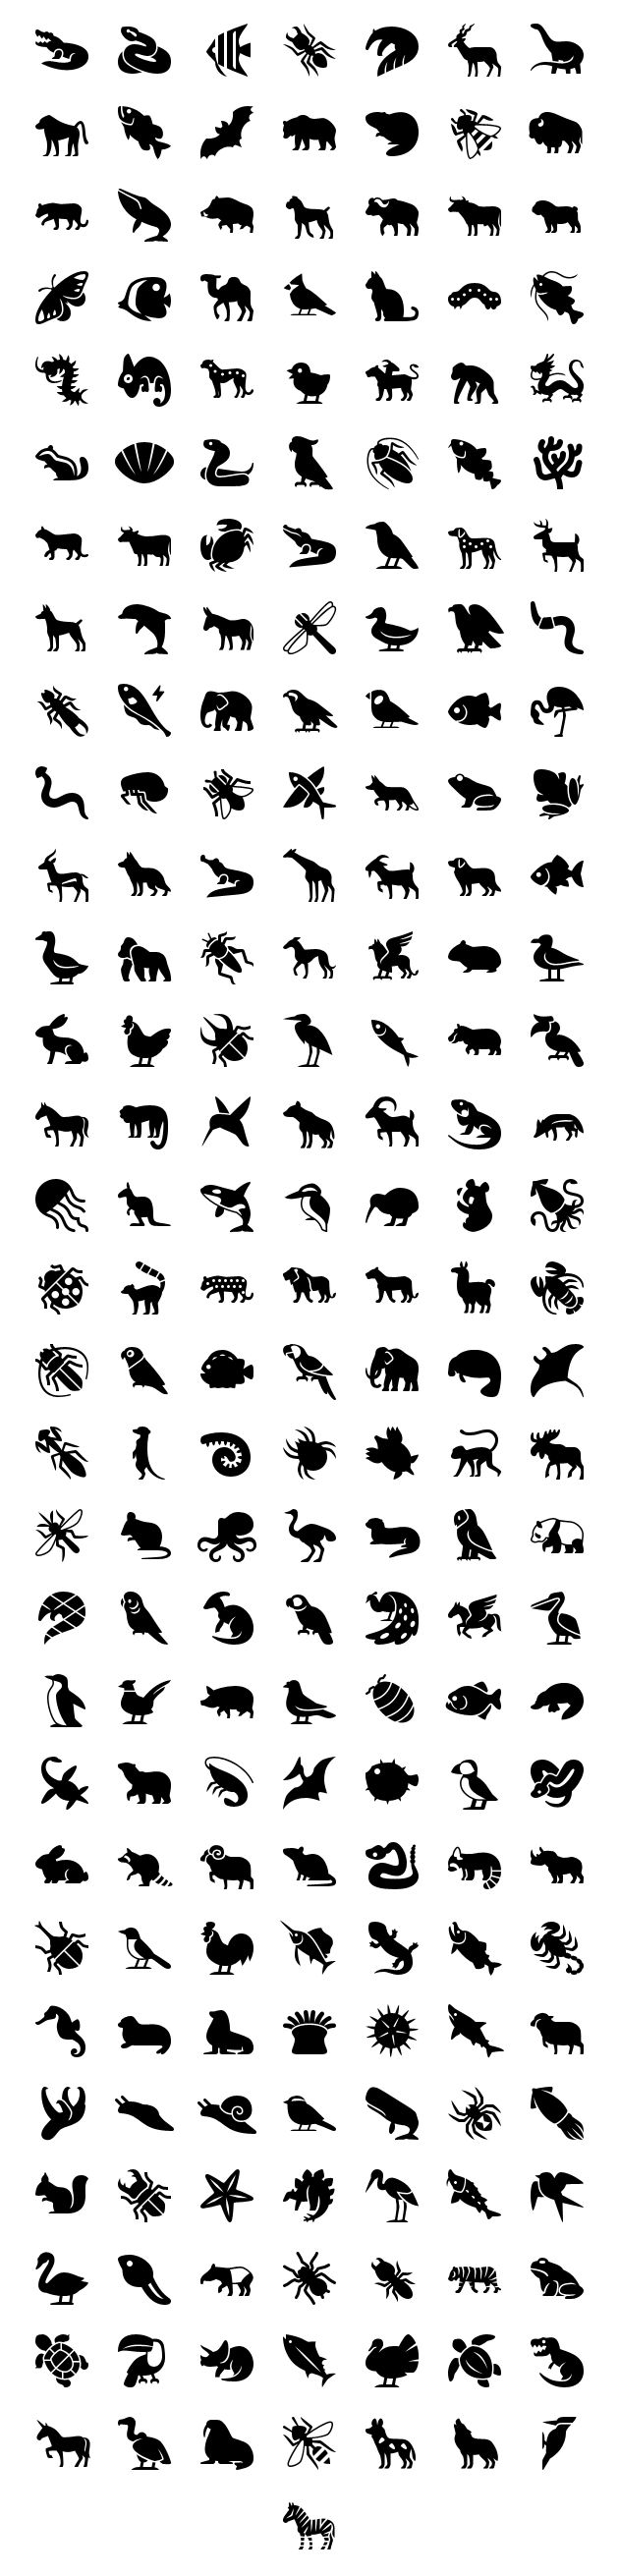 This set contains a load of icons of animals, from invertebrates like corals, slugs and jellyfish, including all sorts of bugs like ants, bees and beetles, to fishes, birds and mammals, plus a few mythical ones like dragon and unicorn. This set includes approximately 5275 unique icon shapes ( without counting sizes ), and all sizes: [...]